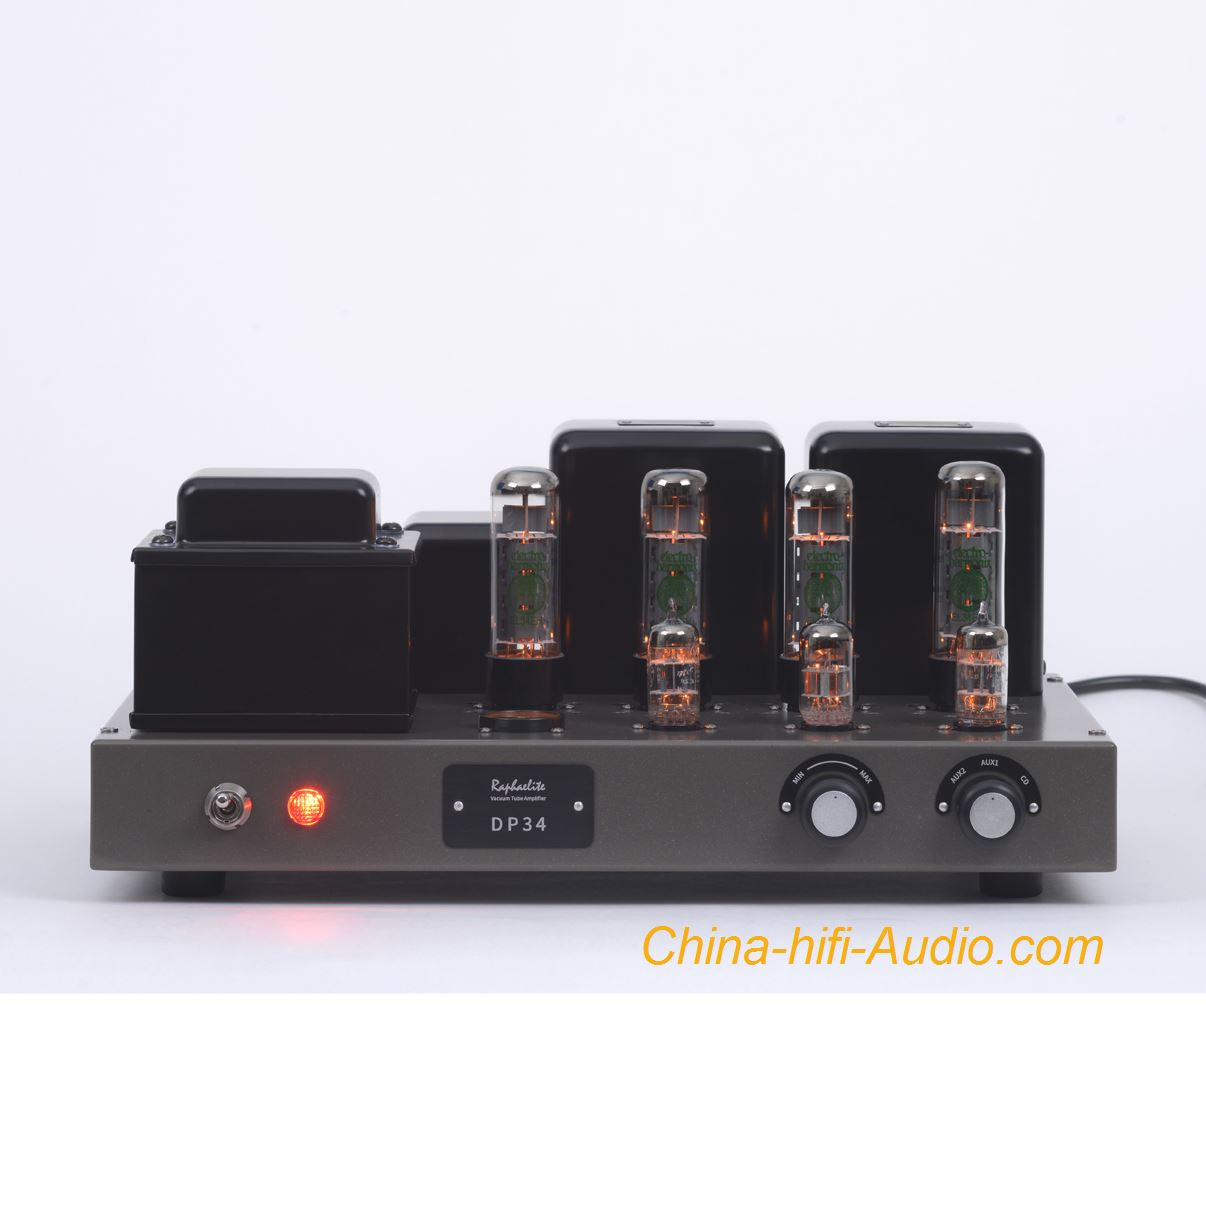 Raphaelite DP34 EL34x4 integrated amplifier HiFi audio stereo tube amp push-pull